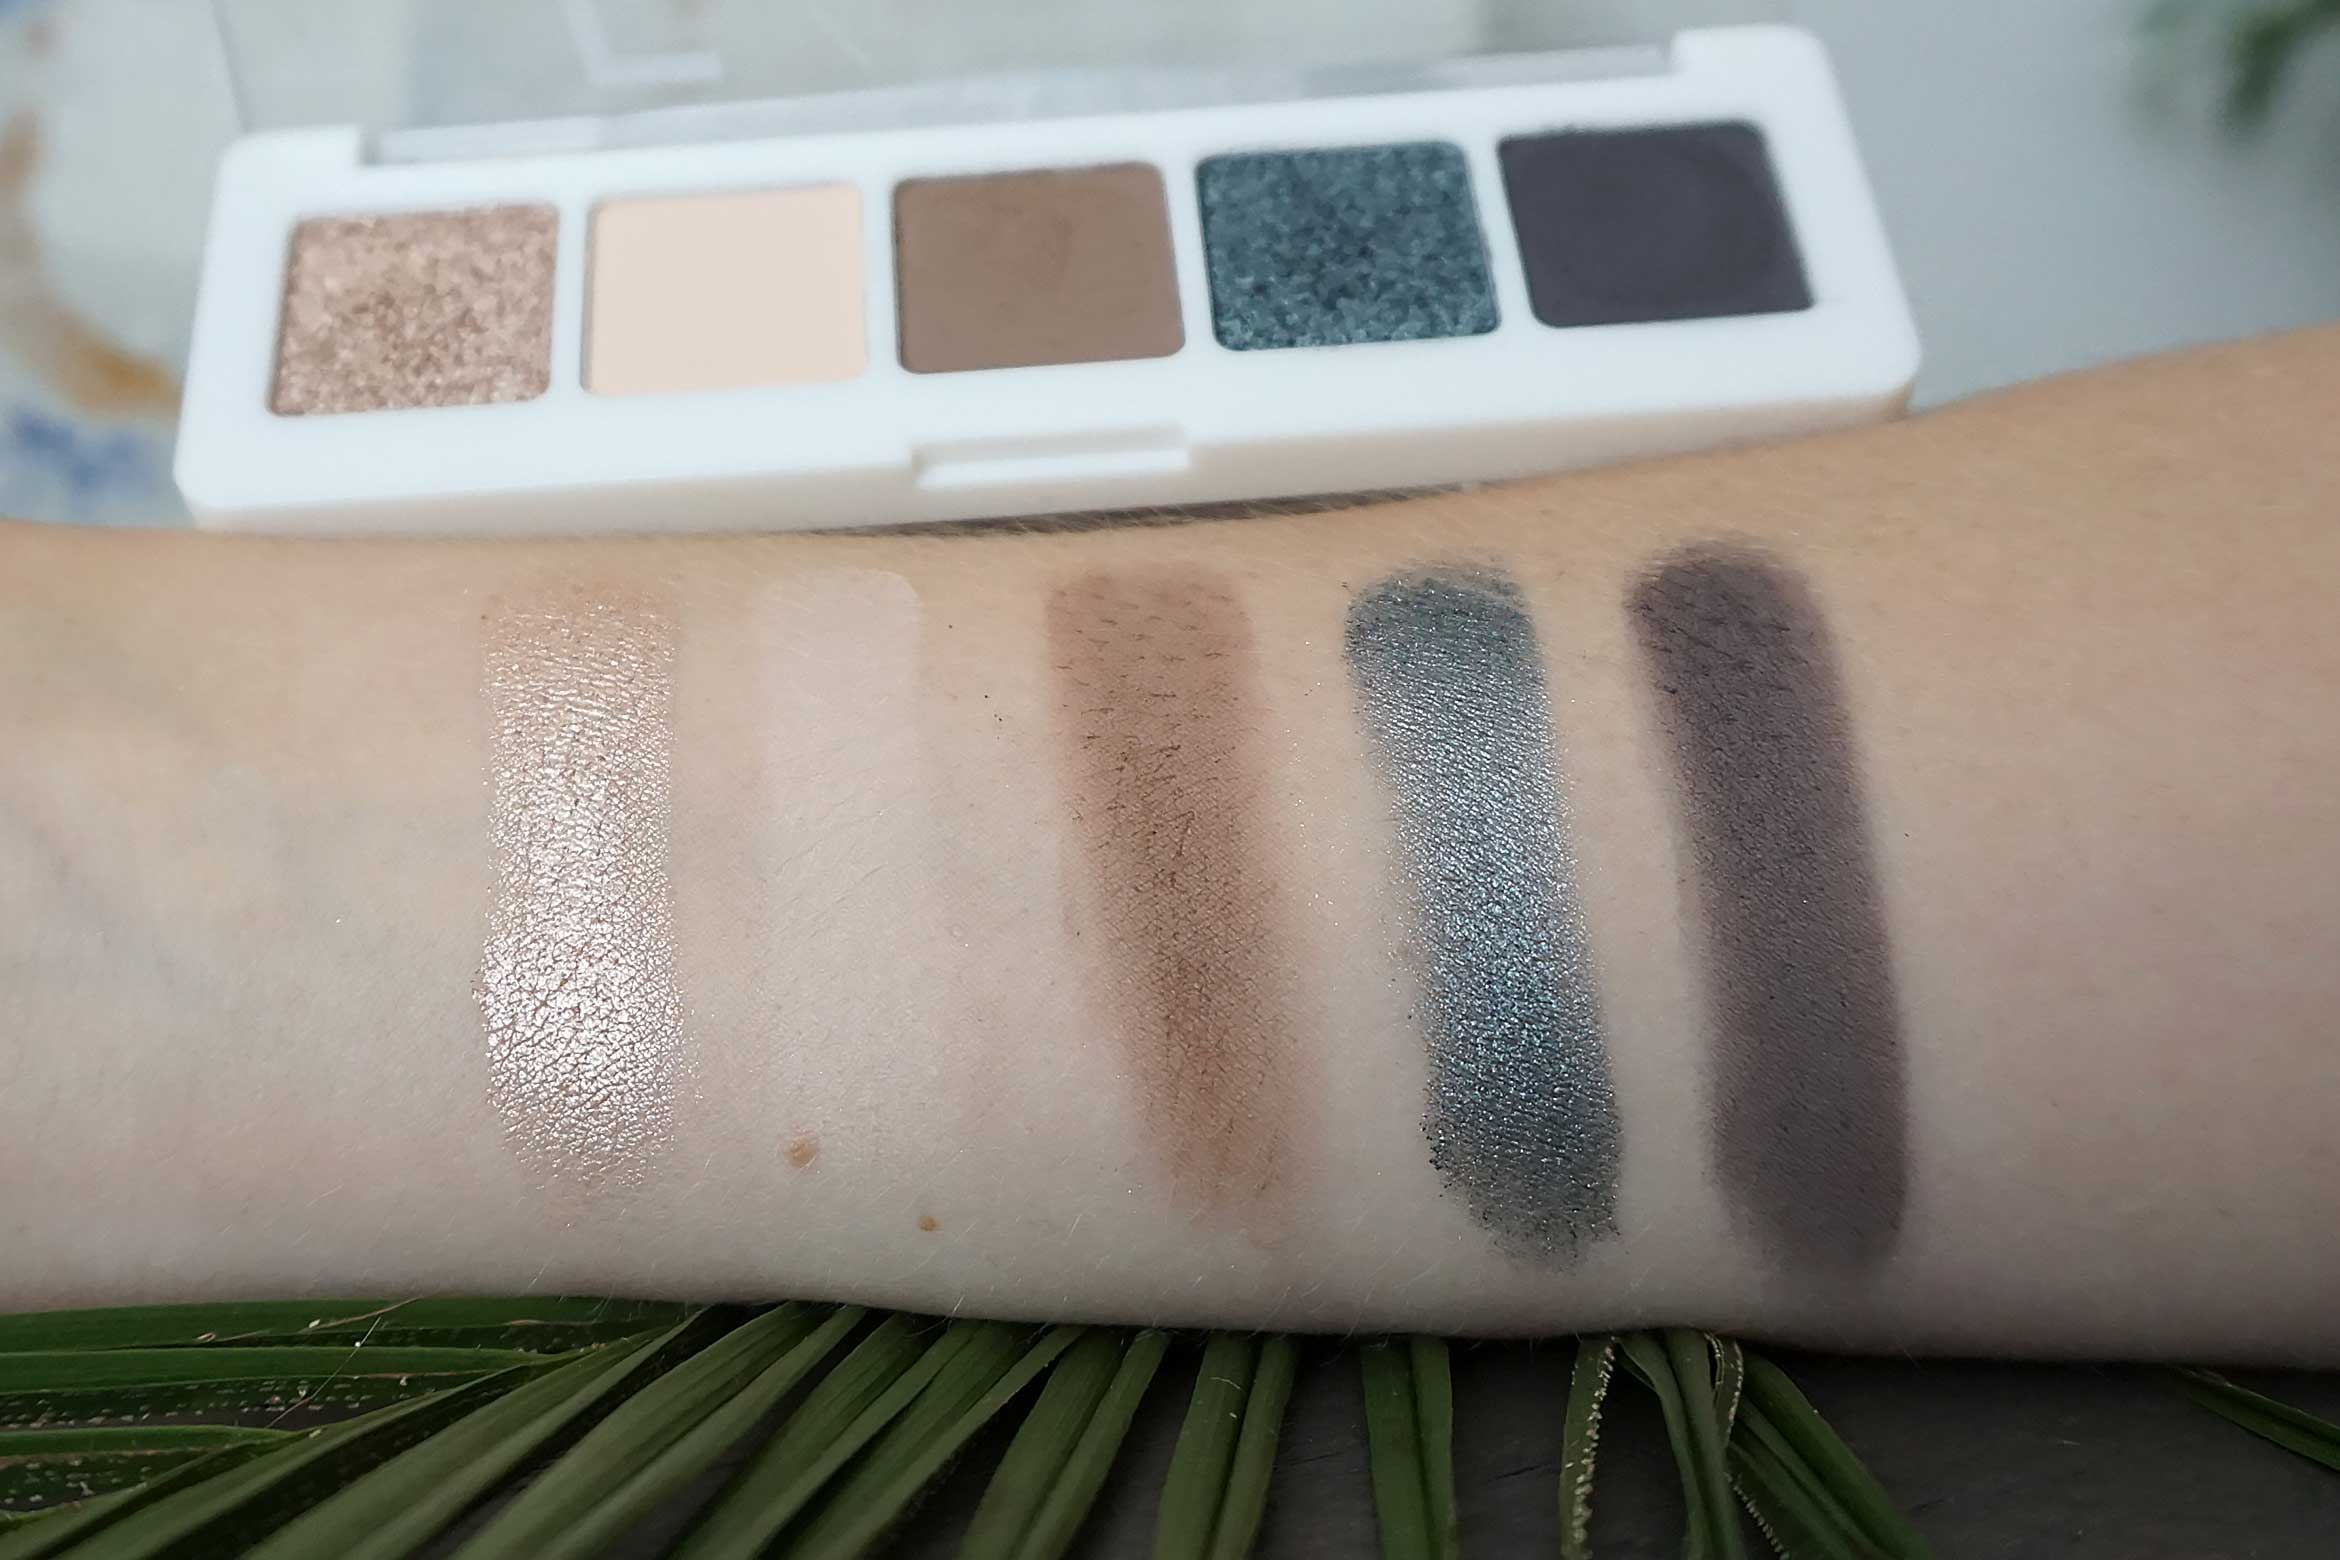 catrice 5 in a box mini eyeshadow palette swatch 040 modern smokey look review